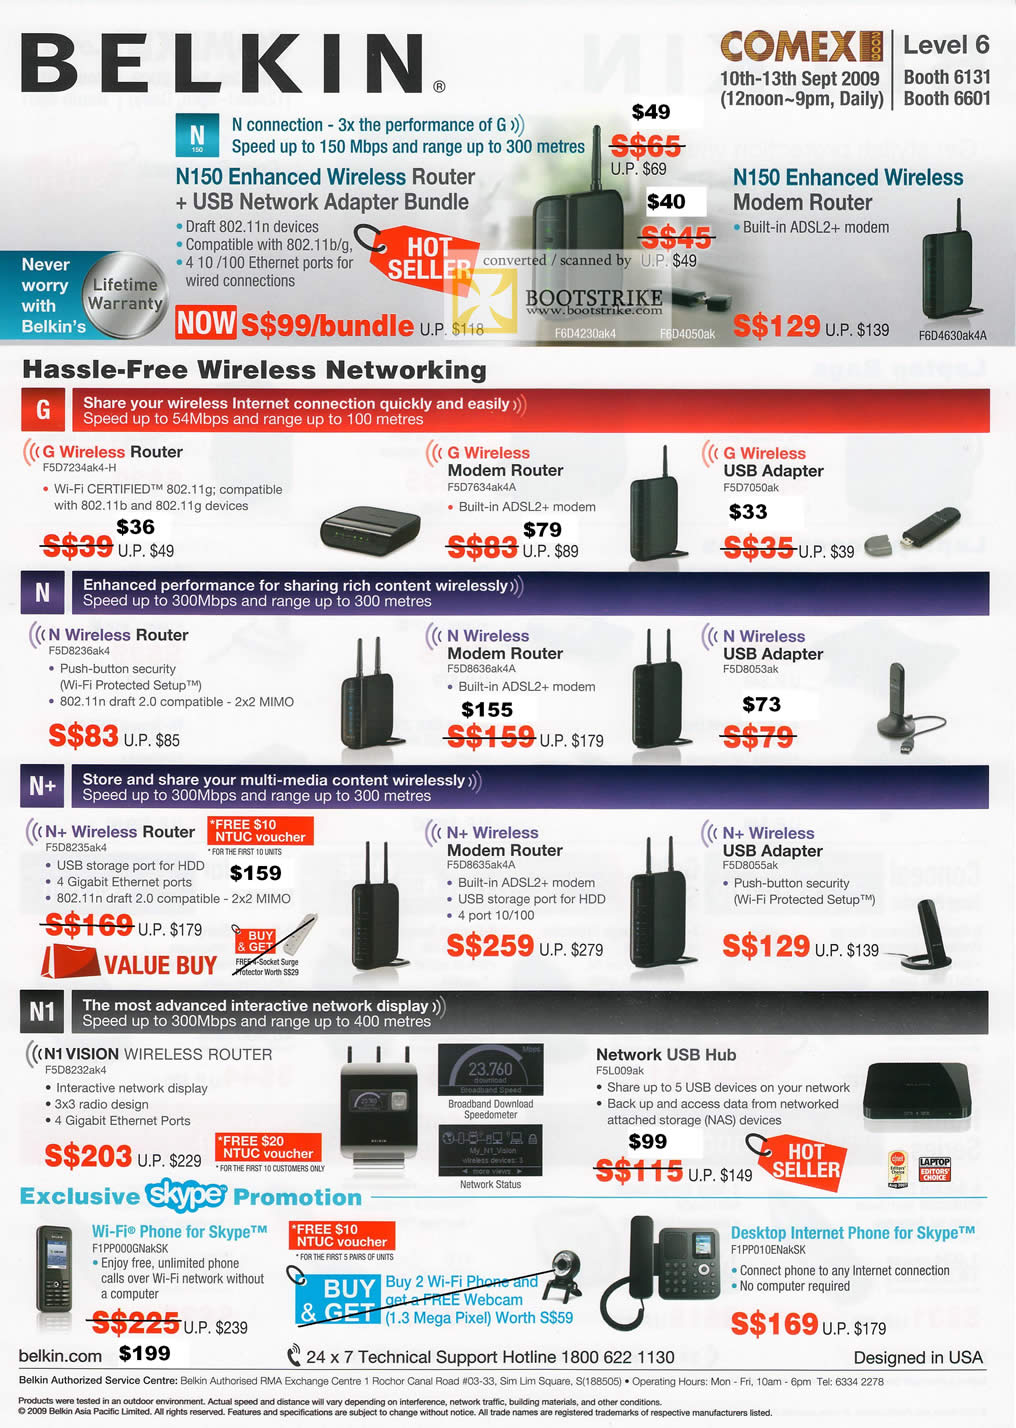 Comex 2009 price list image brochure of Belkin Wireless Networking Router Adaptor Network USB Hub Skype Phone